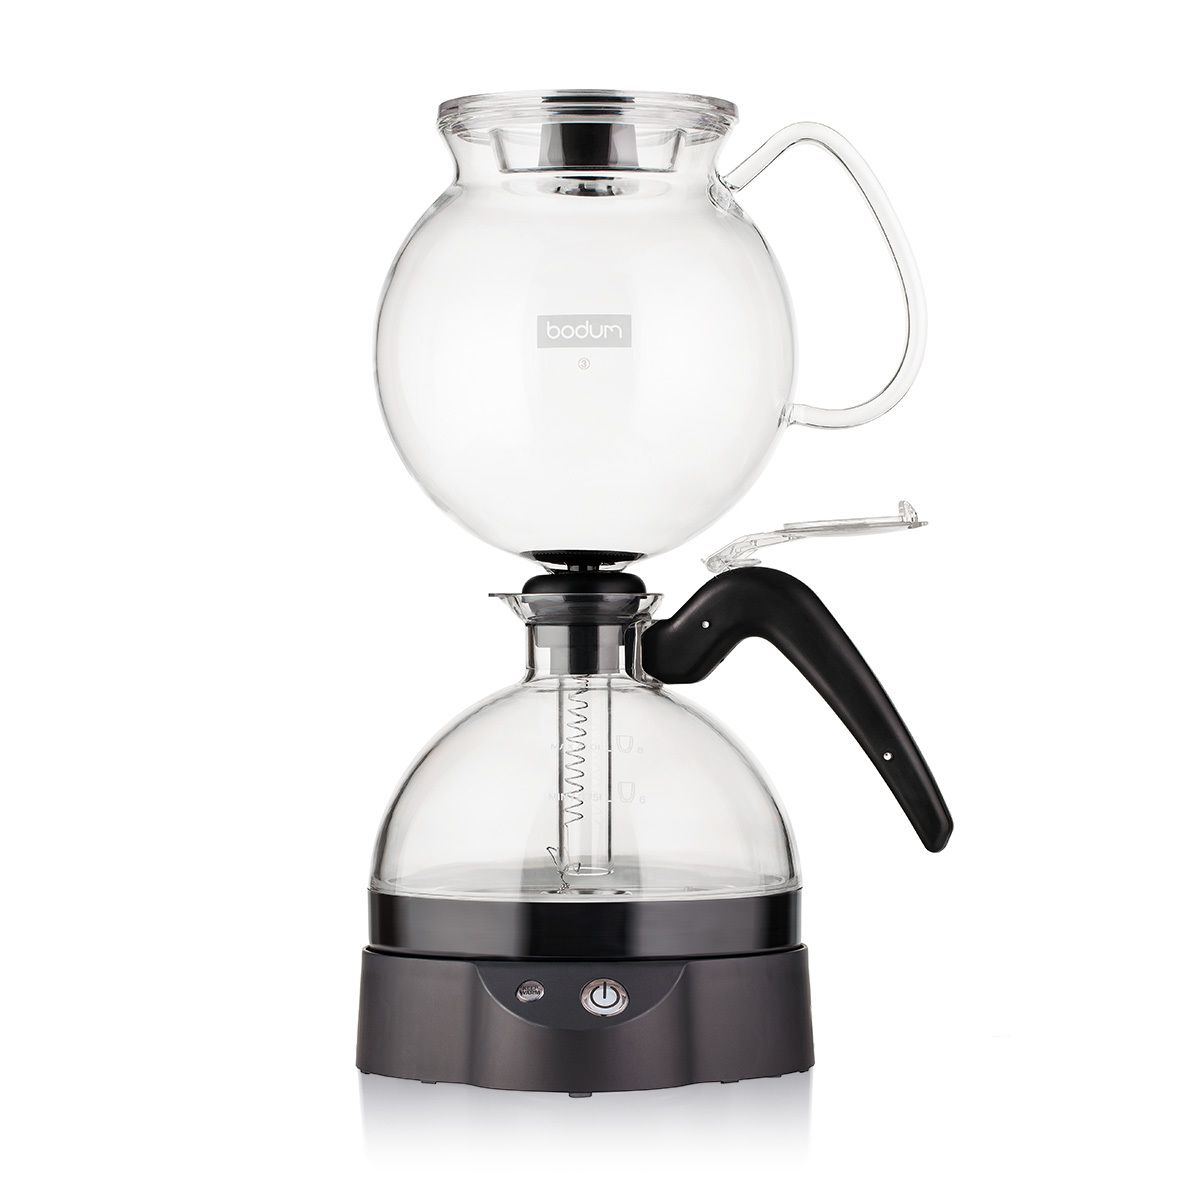 Syphon Coffee Maker ePEBO Bodum